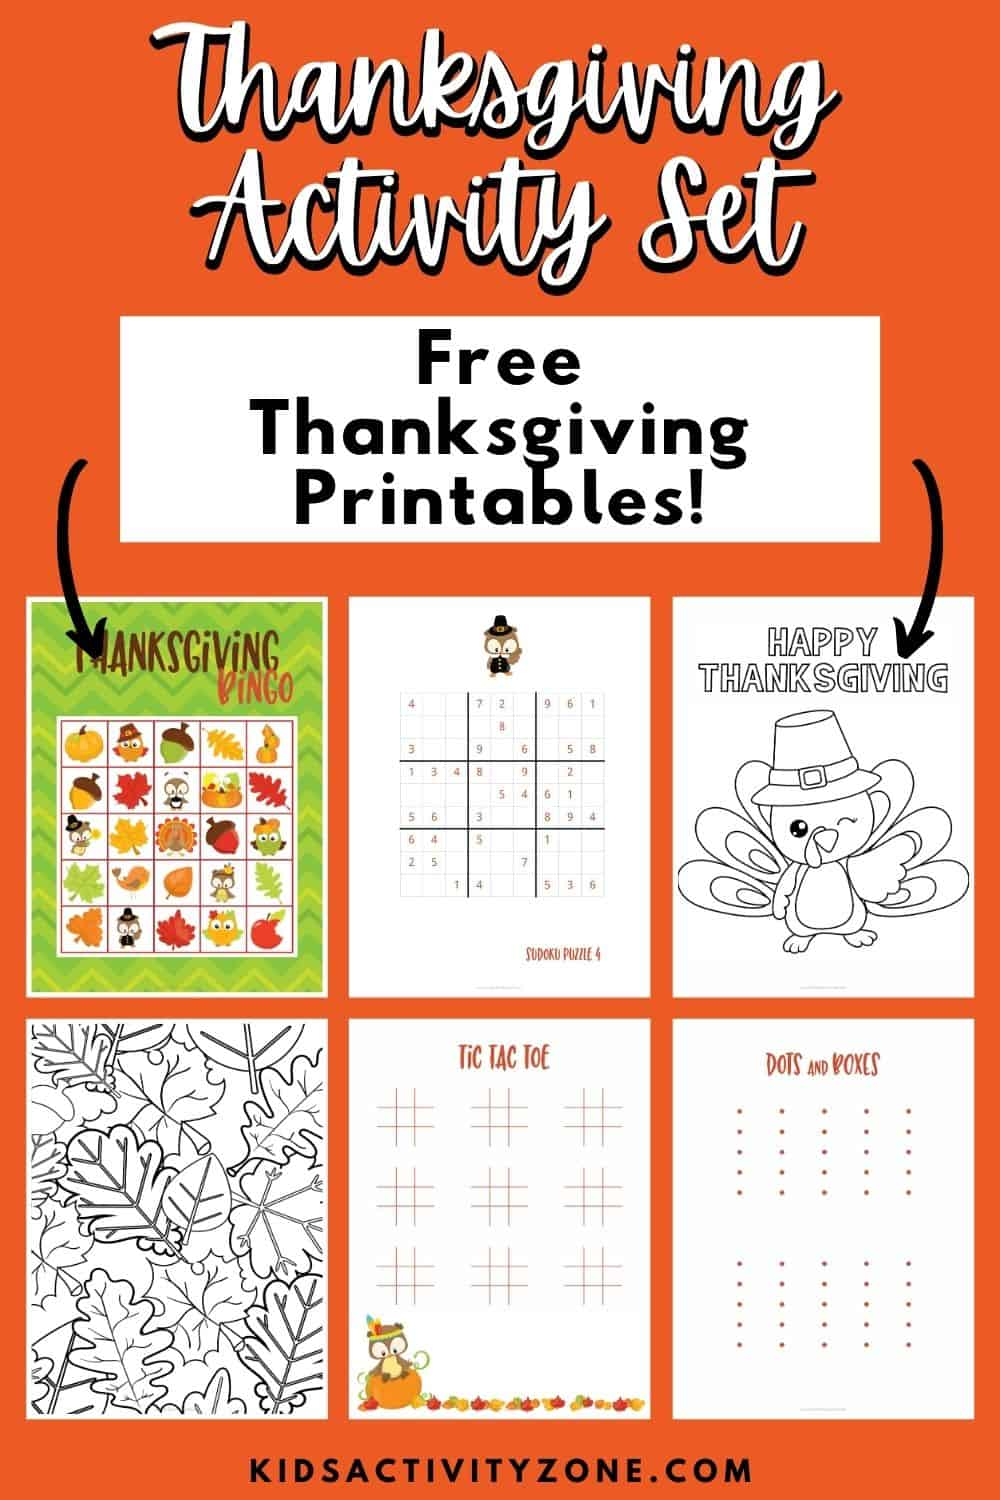 Every Thanksgiving party or holiday gathering needs these FREE Thanksgiving Activities. A set of printables that are perfect for every age. It includes Bingo, Word Search, Coloring Pages, Tic Tac Toe and more! Grab your set today.